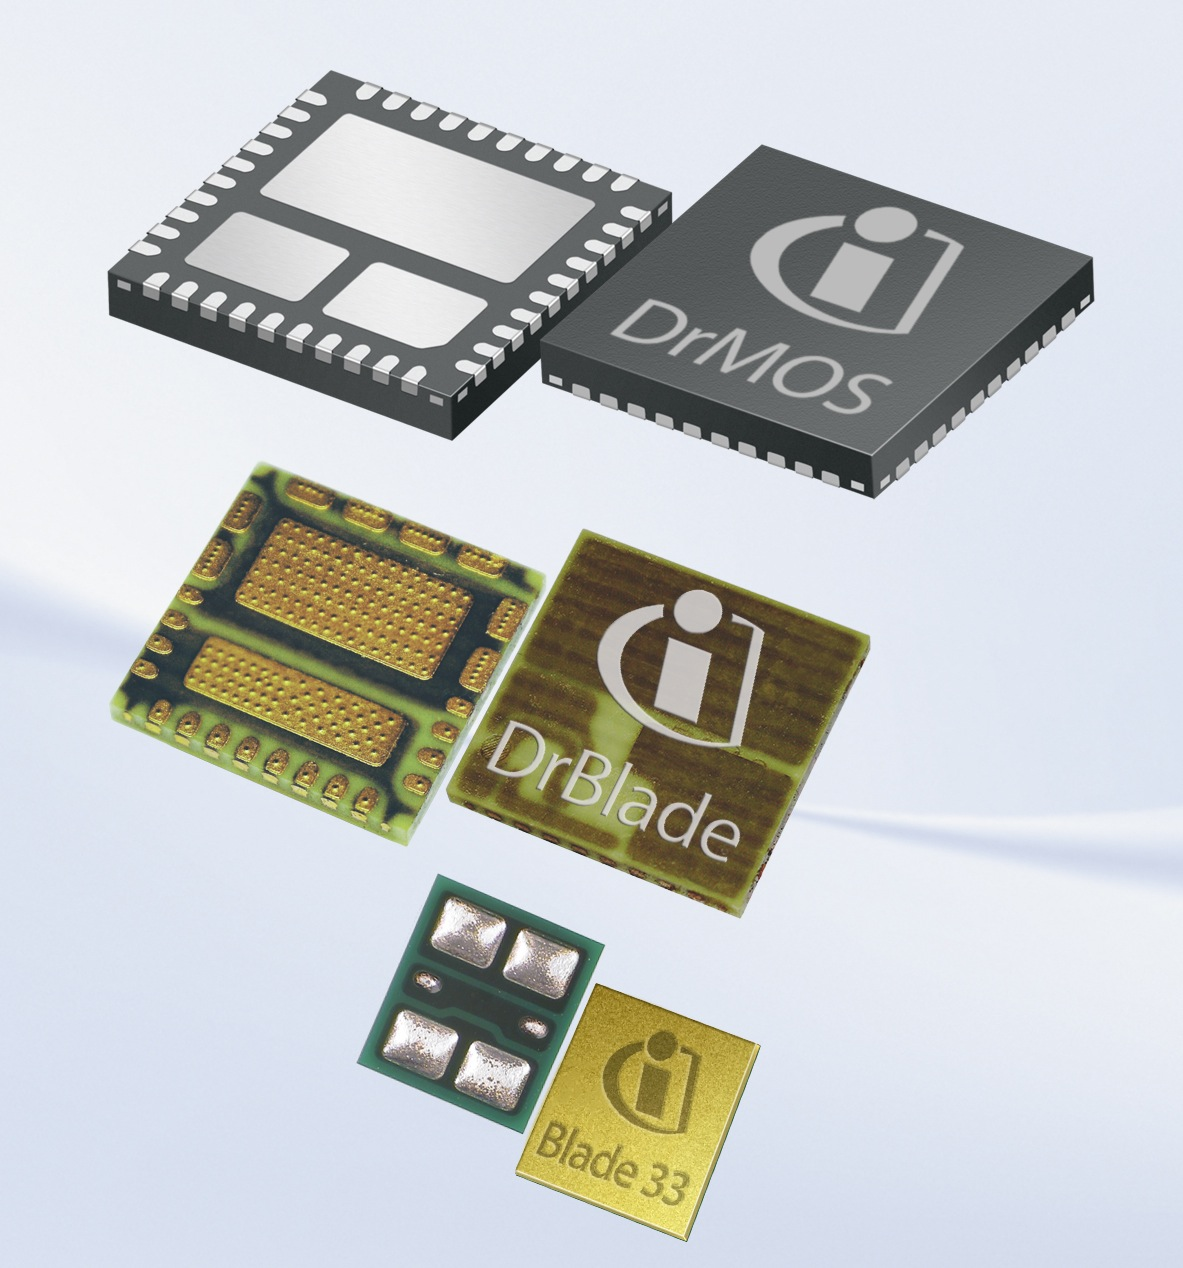 Innovative chip-embedded packaging technology introduced at APEC 2013